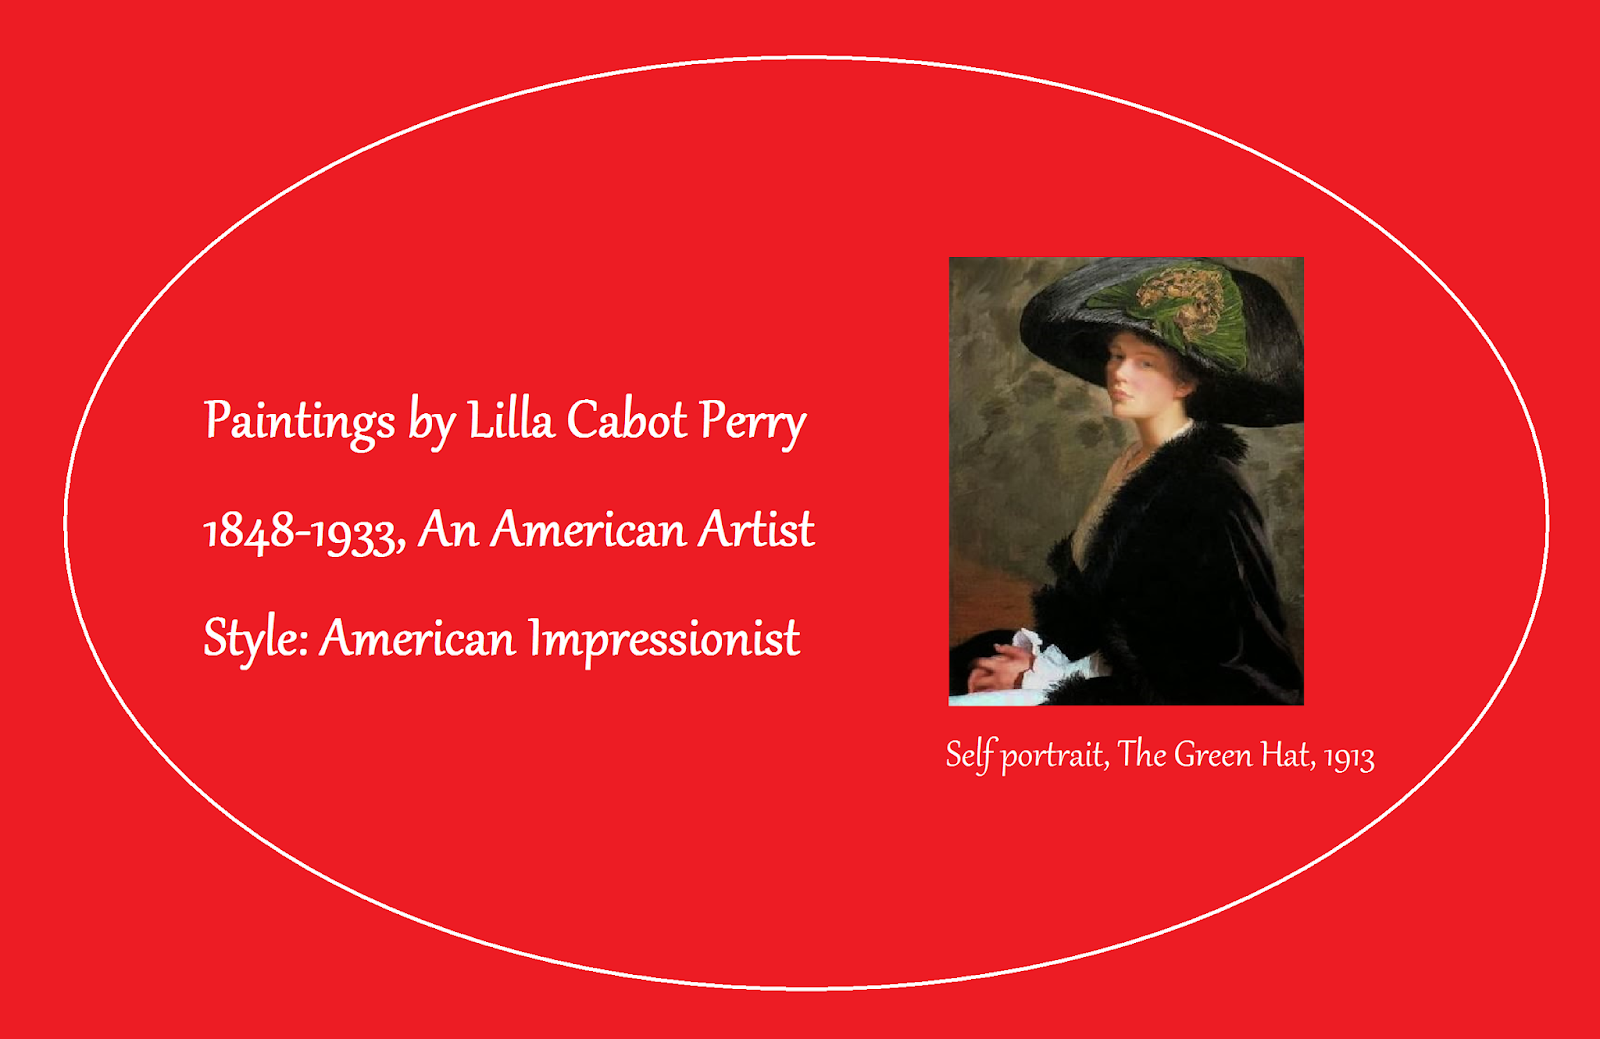 Paintings by Lilla Cabot Perry (1848-1933)